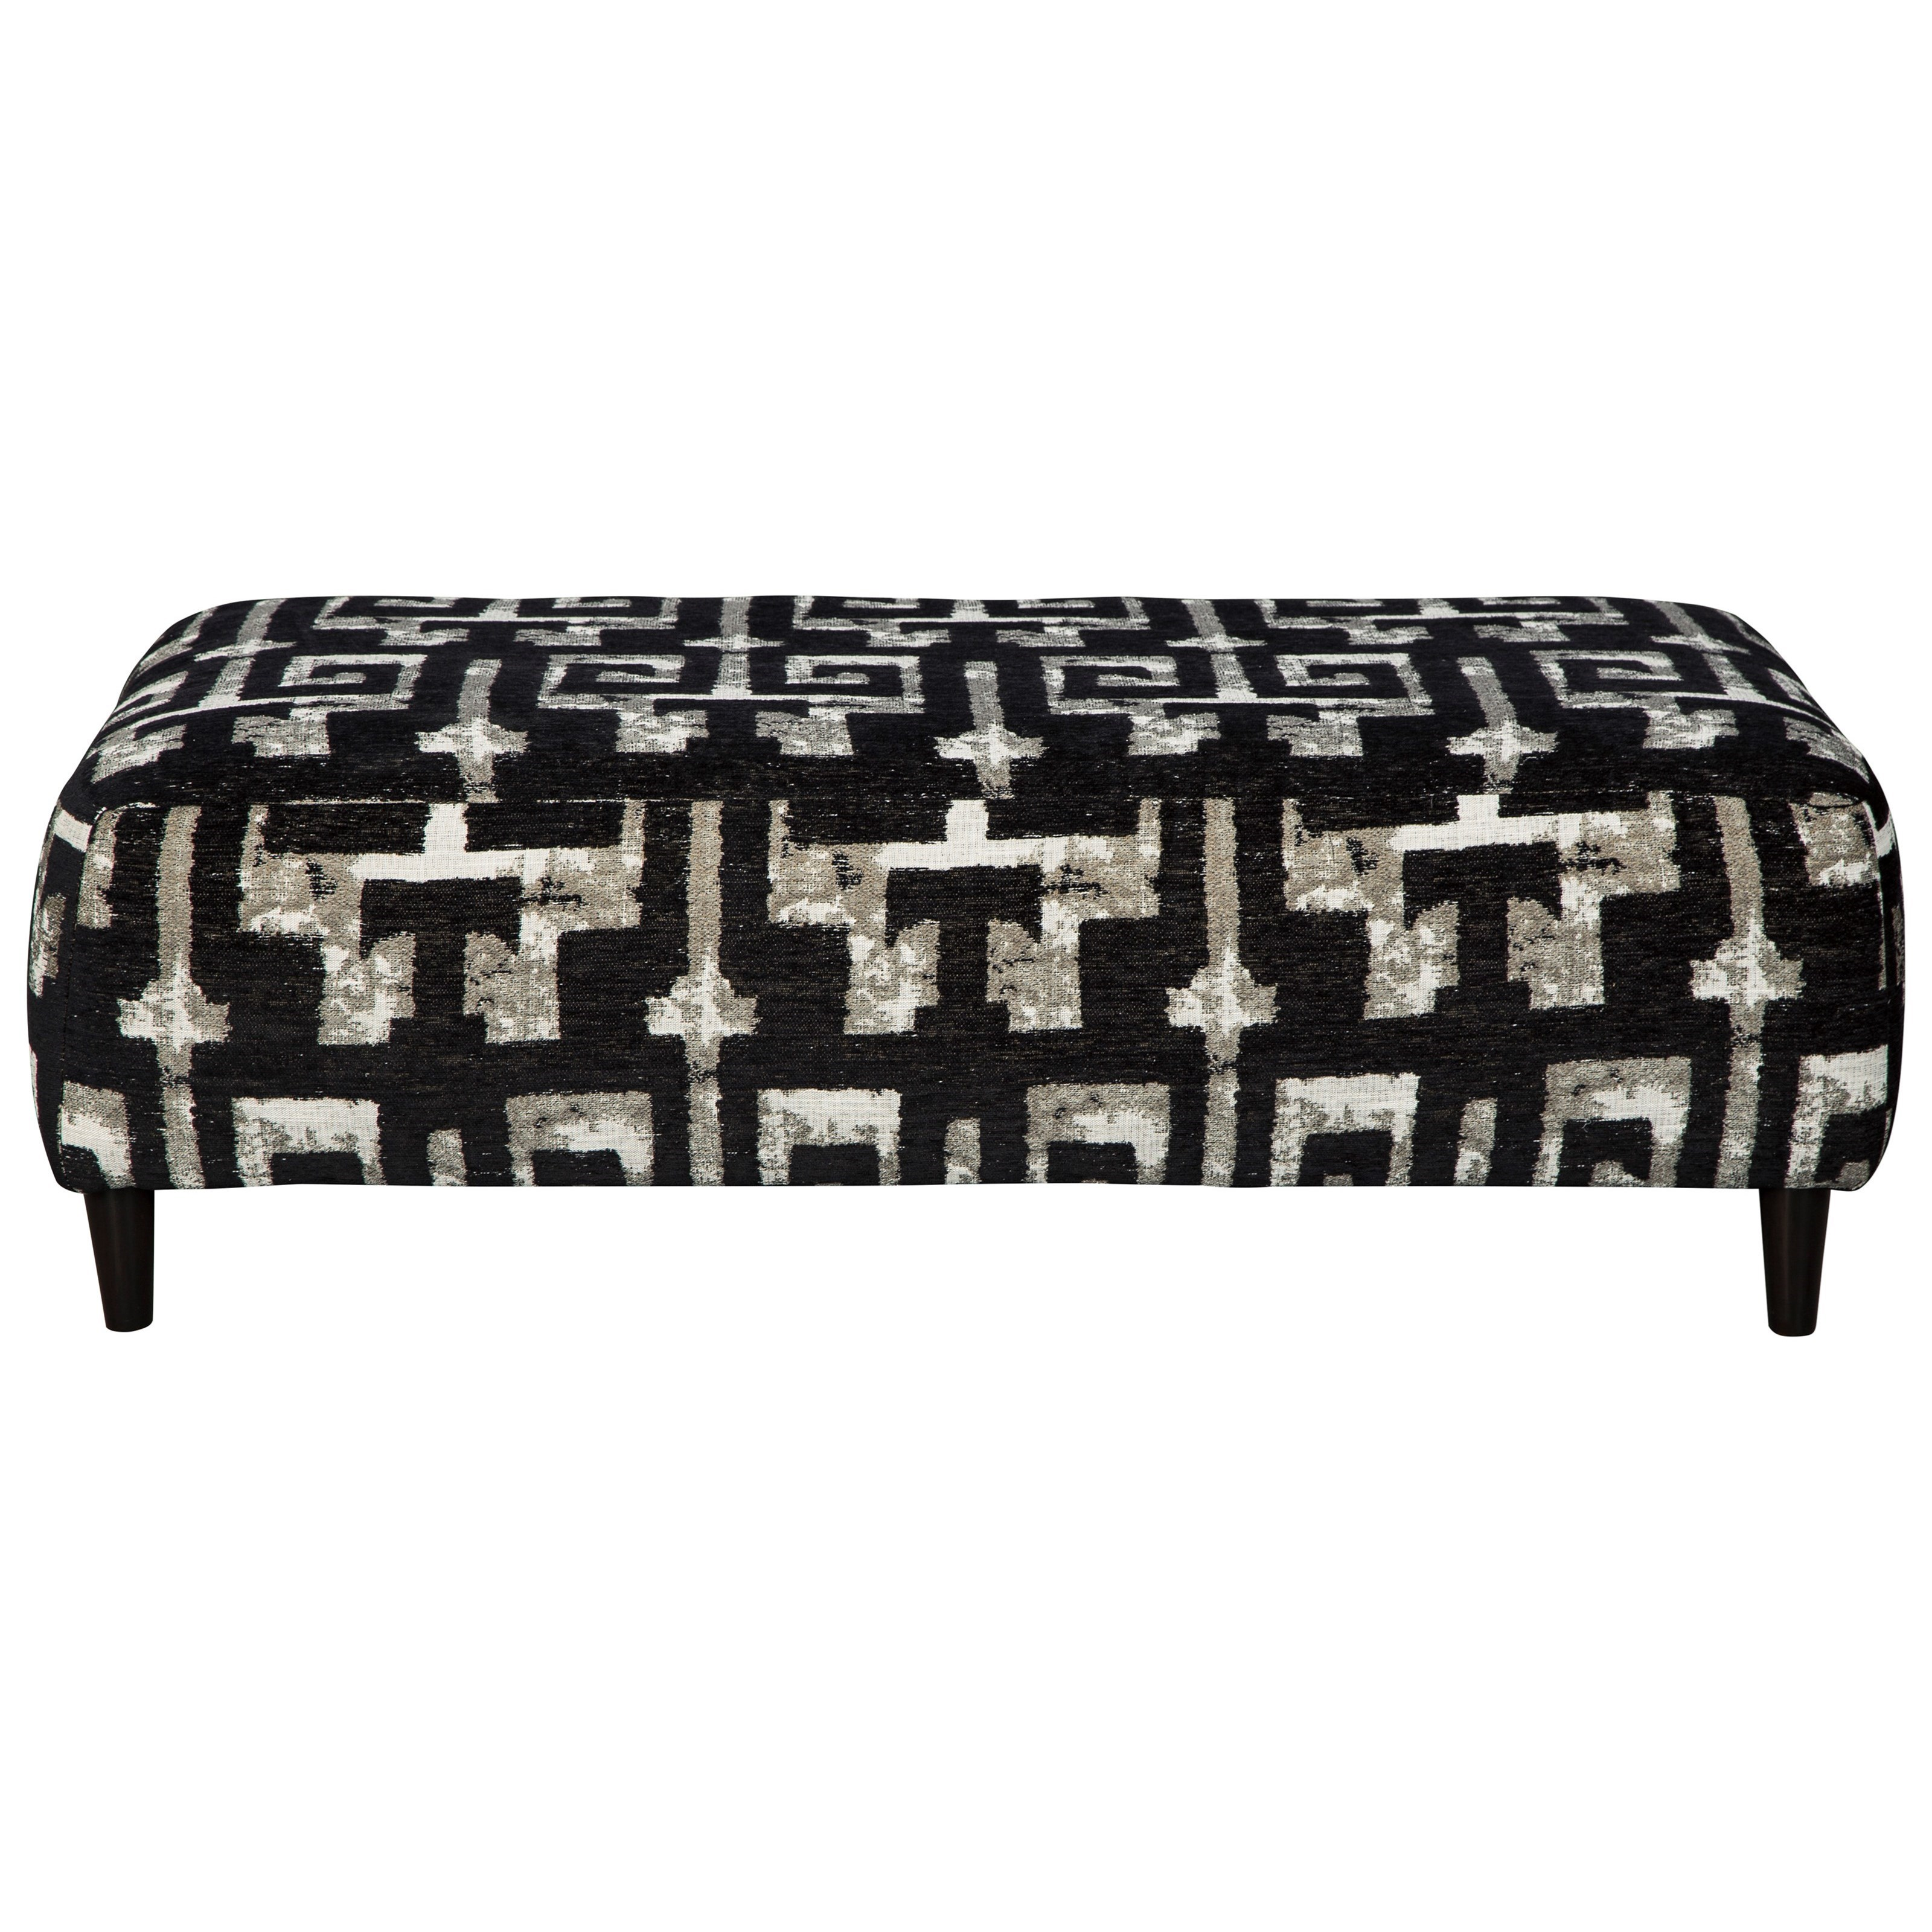 Ravenstone Oversized Accent Ottoman by Signature Design by Ashley at Northeast Factory Direct